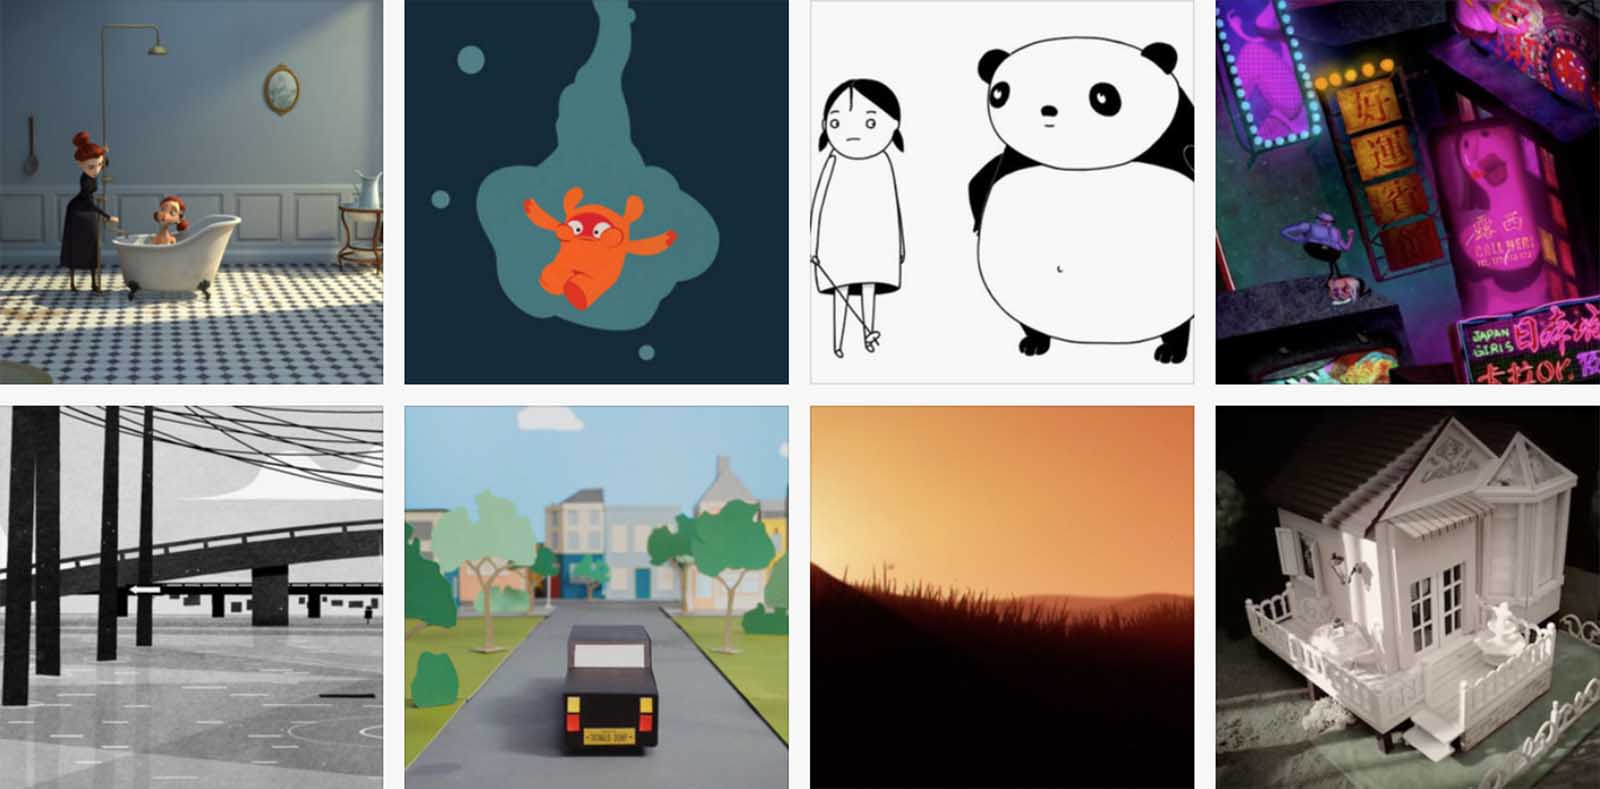 The British Animated Film Festival aims to shine a light on talented animators and destigmatize animation as a medium. This is perfect for new animators.